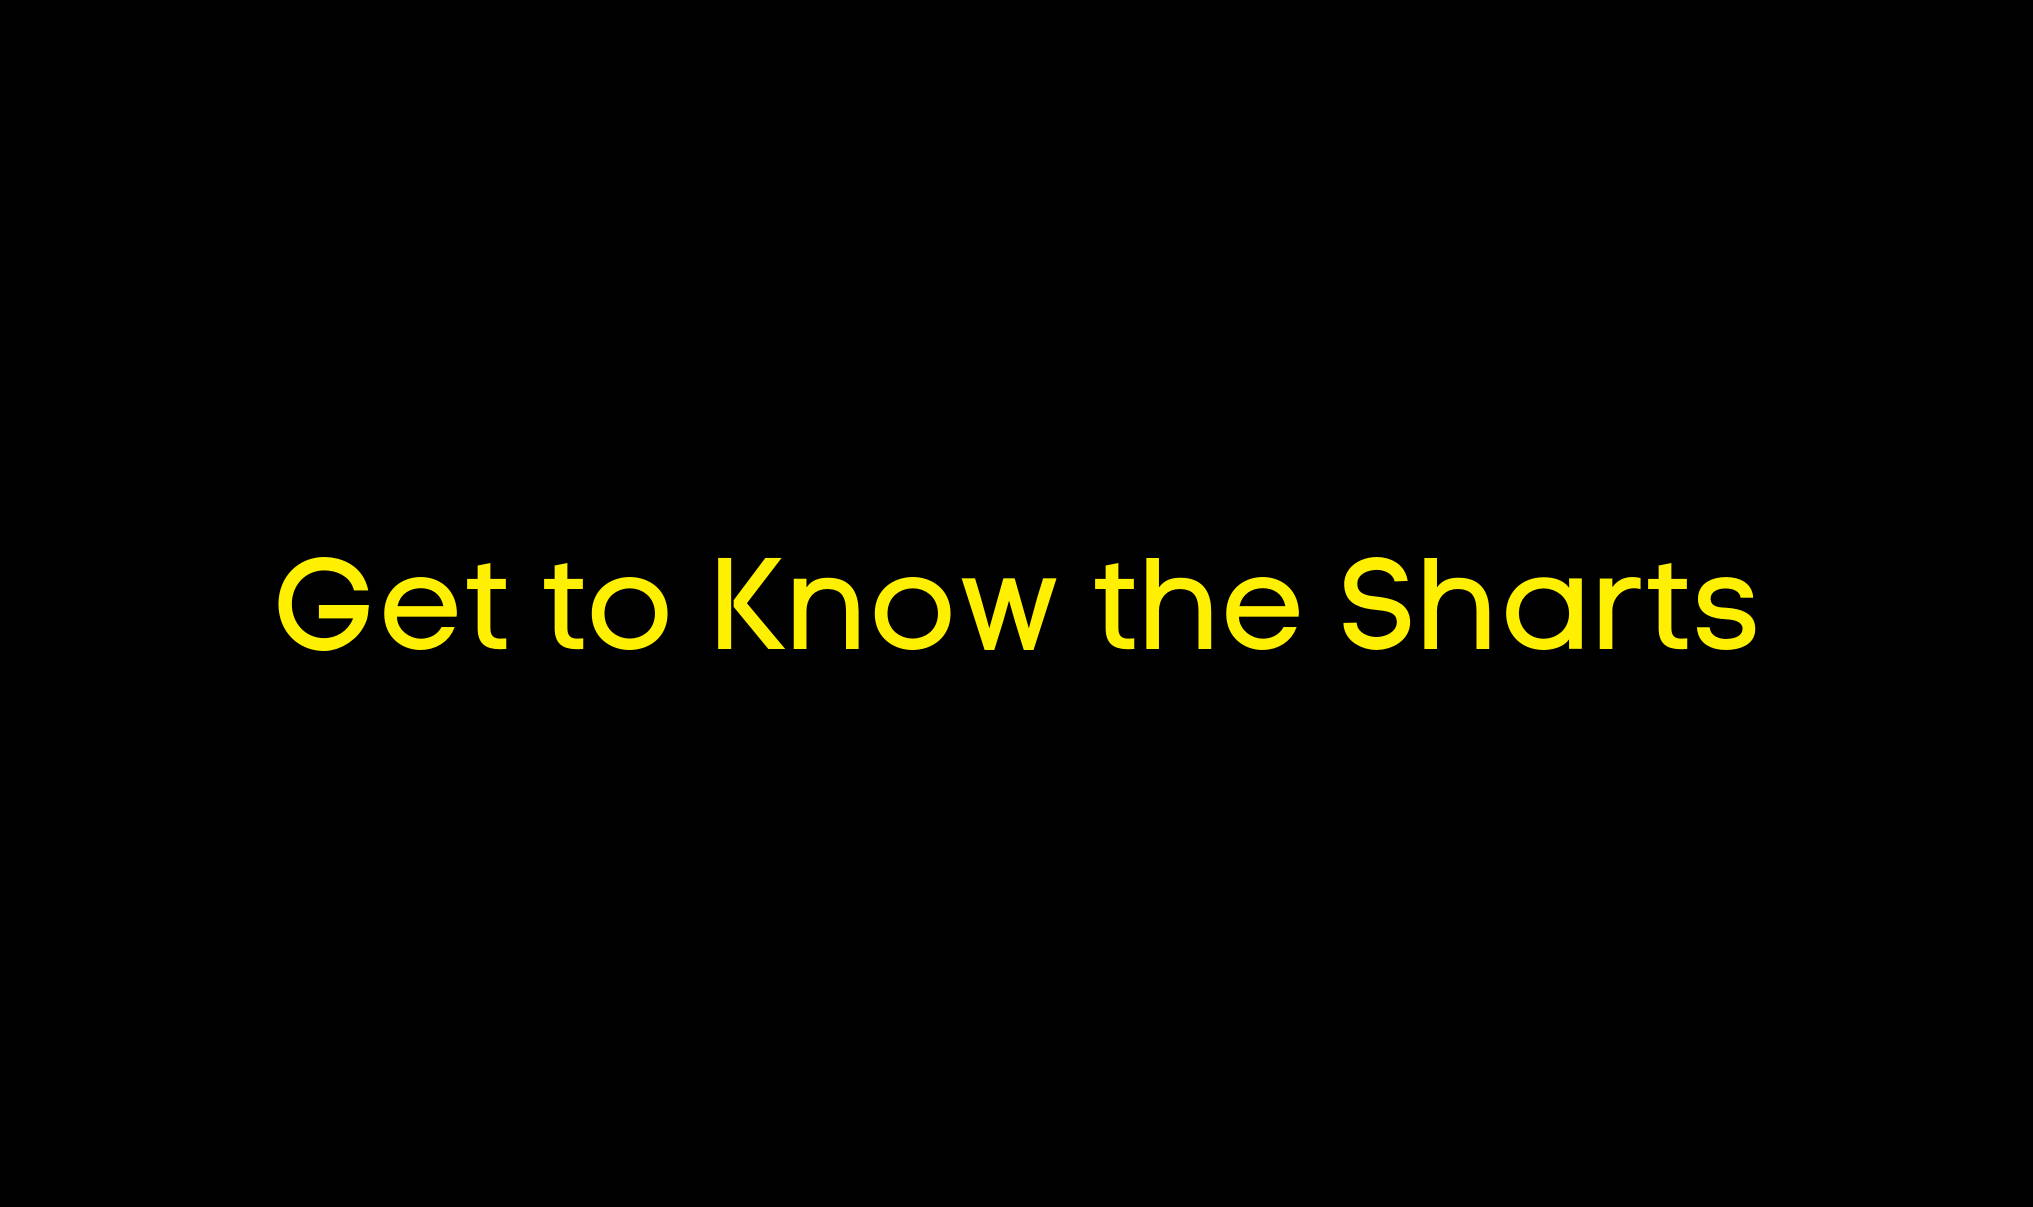 Get to Know the Sharts